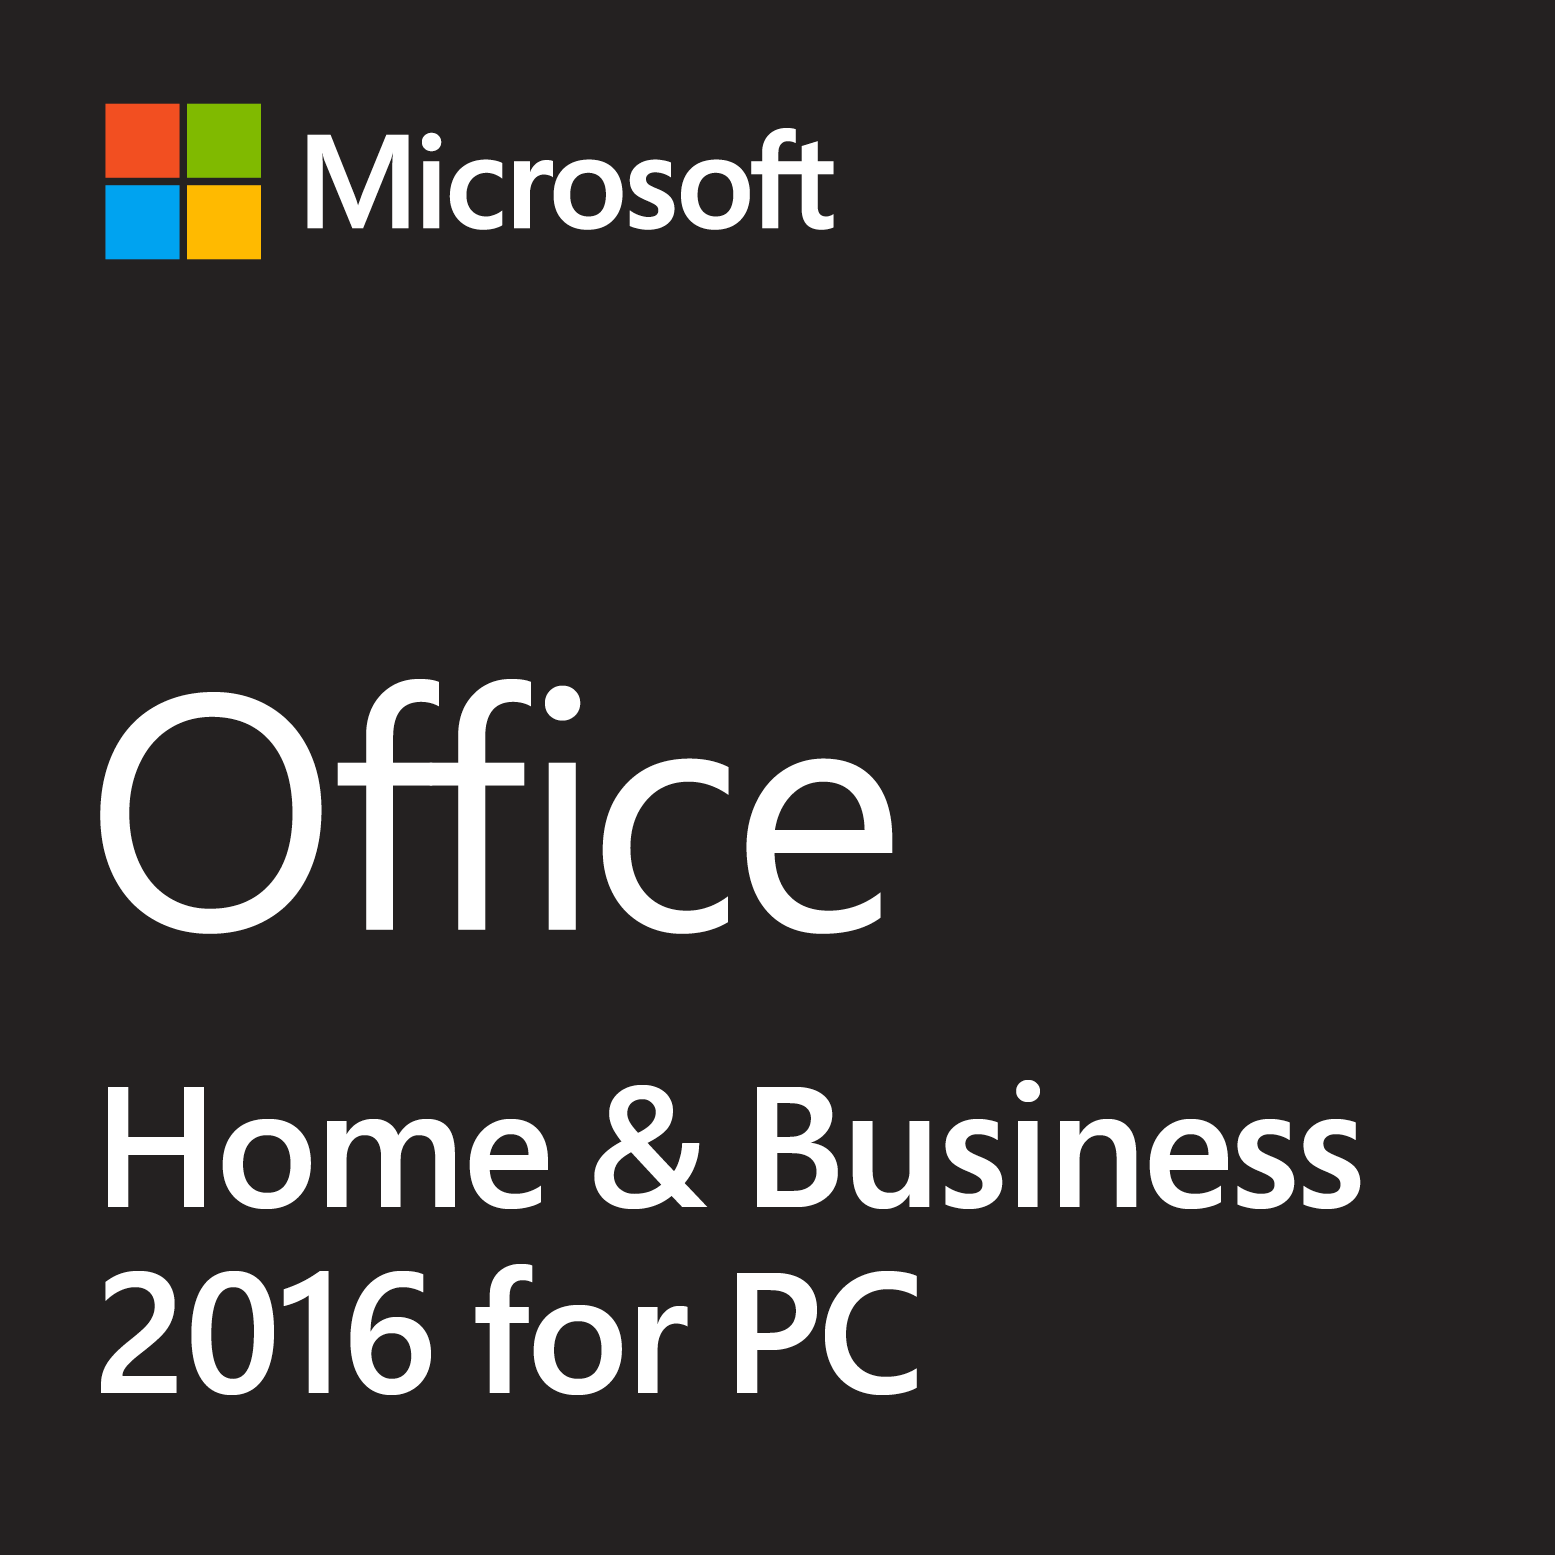 Office Home & Business 2016